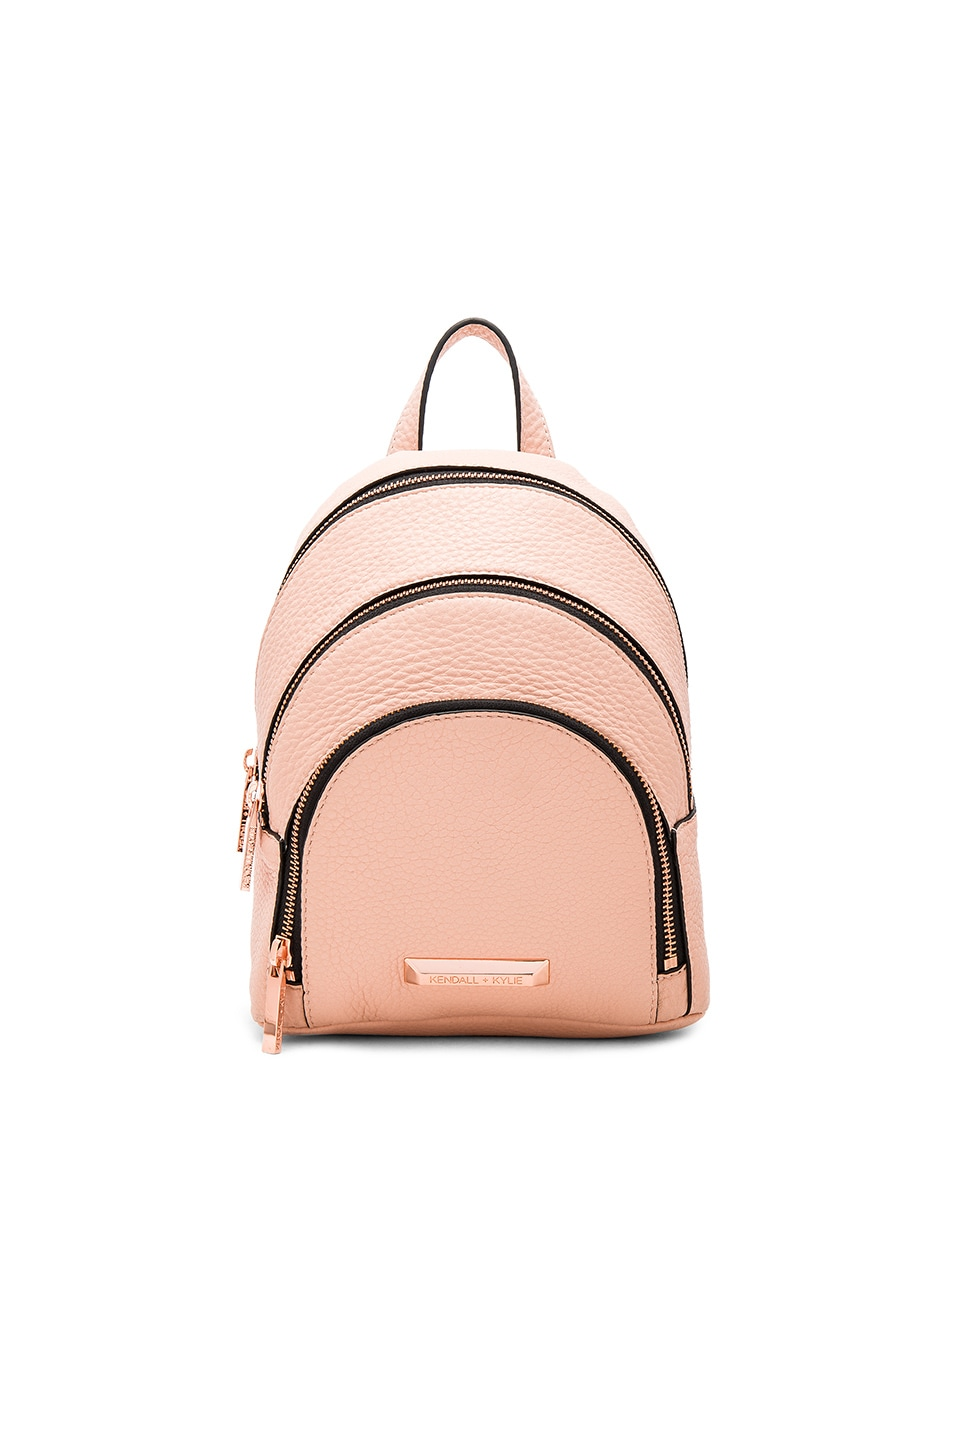 KENDALL + KYLIE Sloane Mini Backpack in Rose Cloud